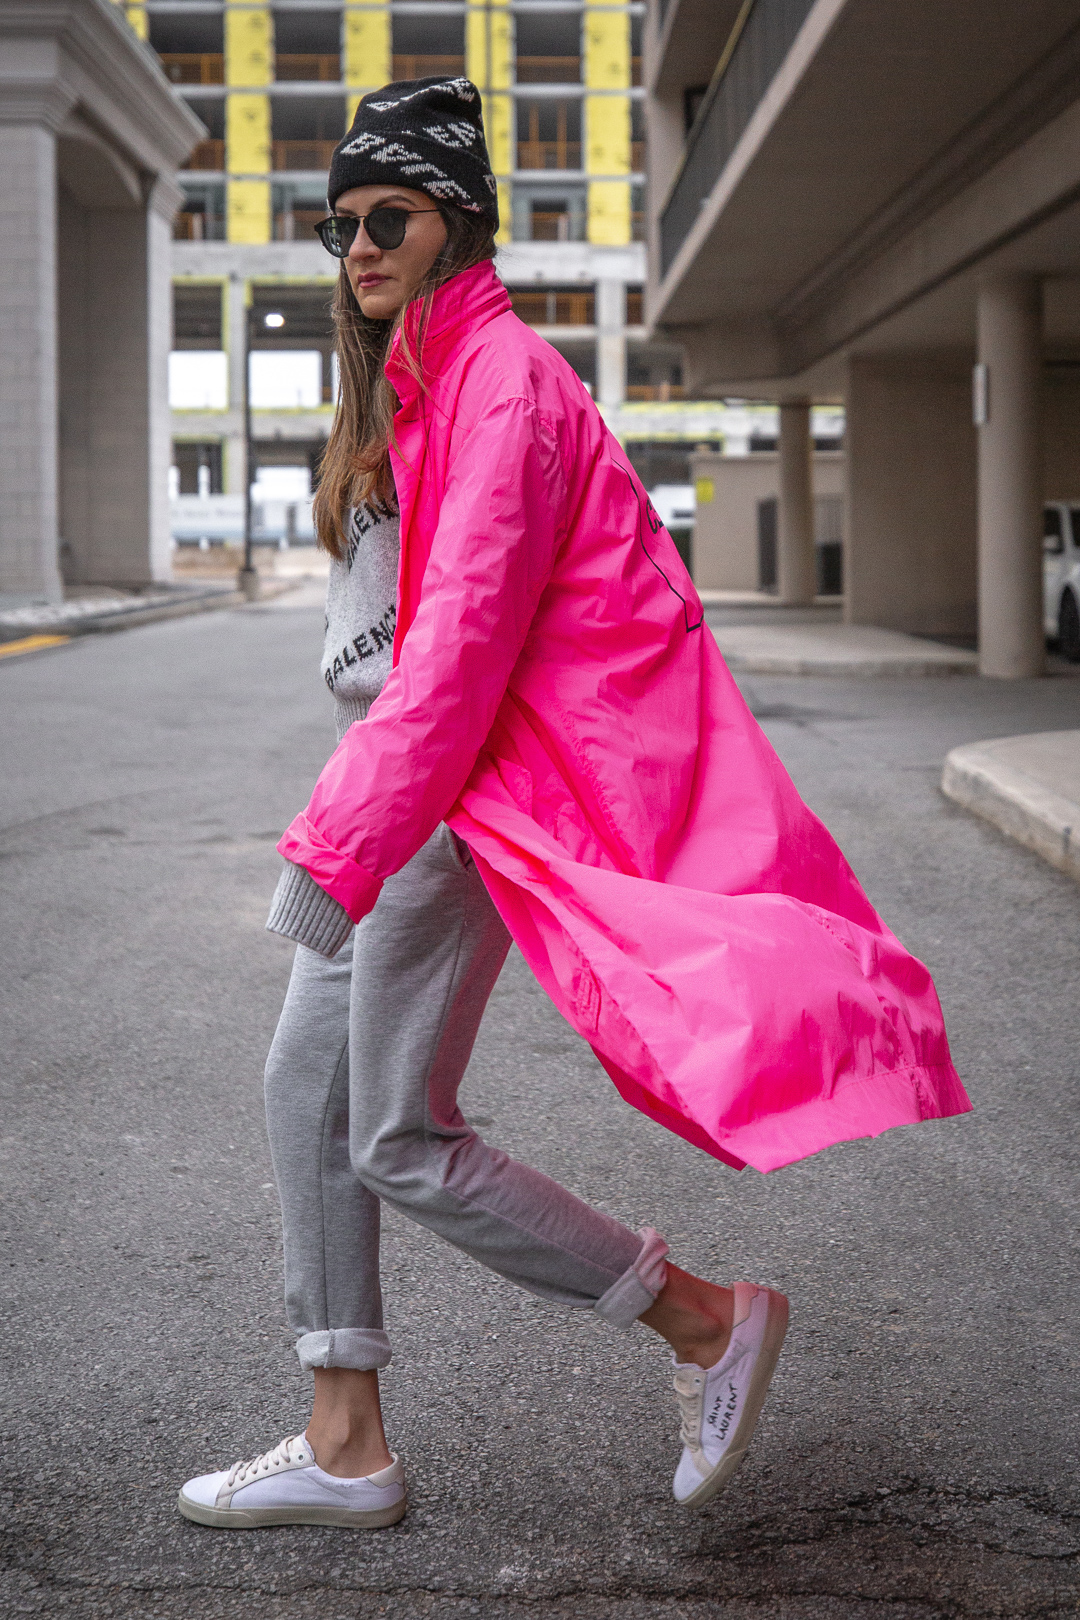 Nathalie Martin - Opening Ceremony pink nylon trench, Saint Laurent white canvas sneakers, Balenciaga logo beanie and cropped logo sweater, grey joggers, casual street style, woahstyle.com_5505.jpg